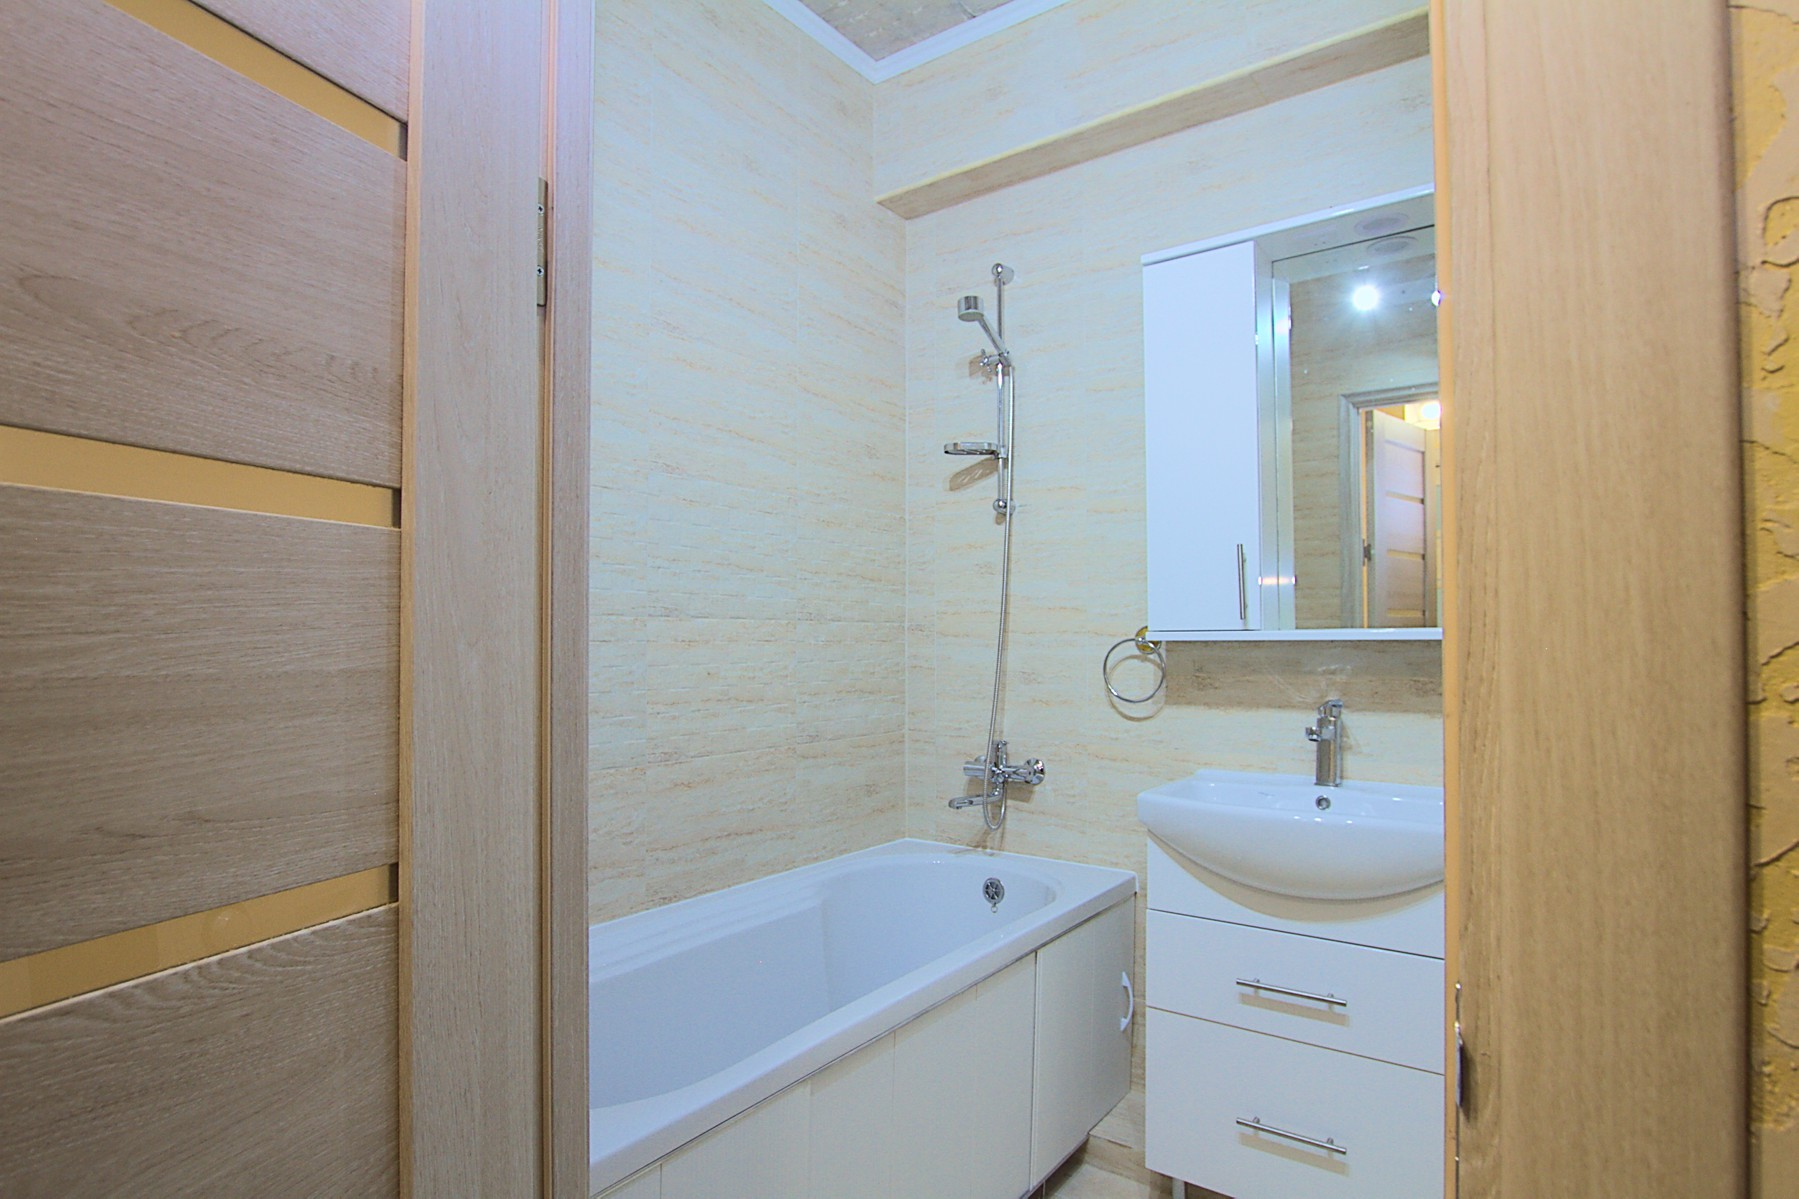 New apartment studio for rent in Chisinau: 1 room, 1 bedroom, 38 m²